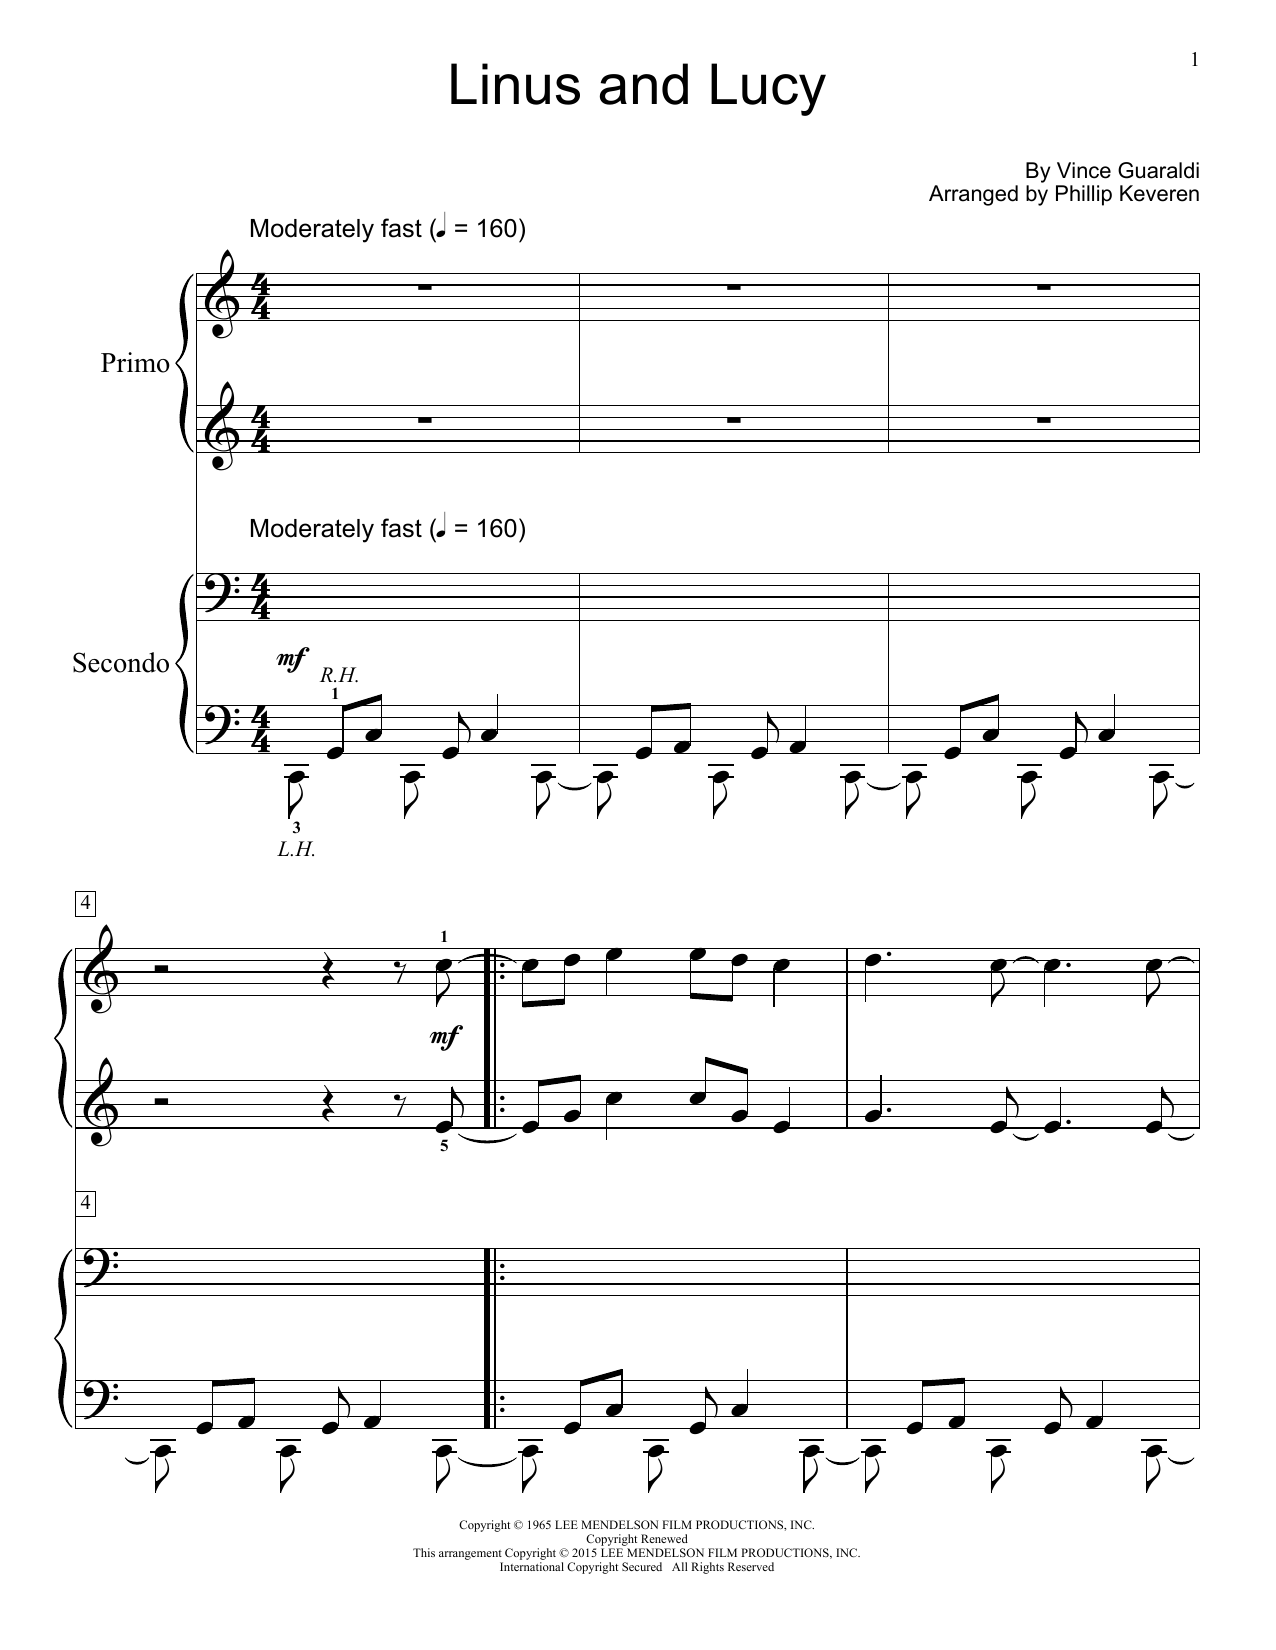 Linus and Lucy - Early Intermediate Level 4 Showcase Solos Pop Duet for One Piano, by Vince Guaraldi